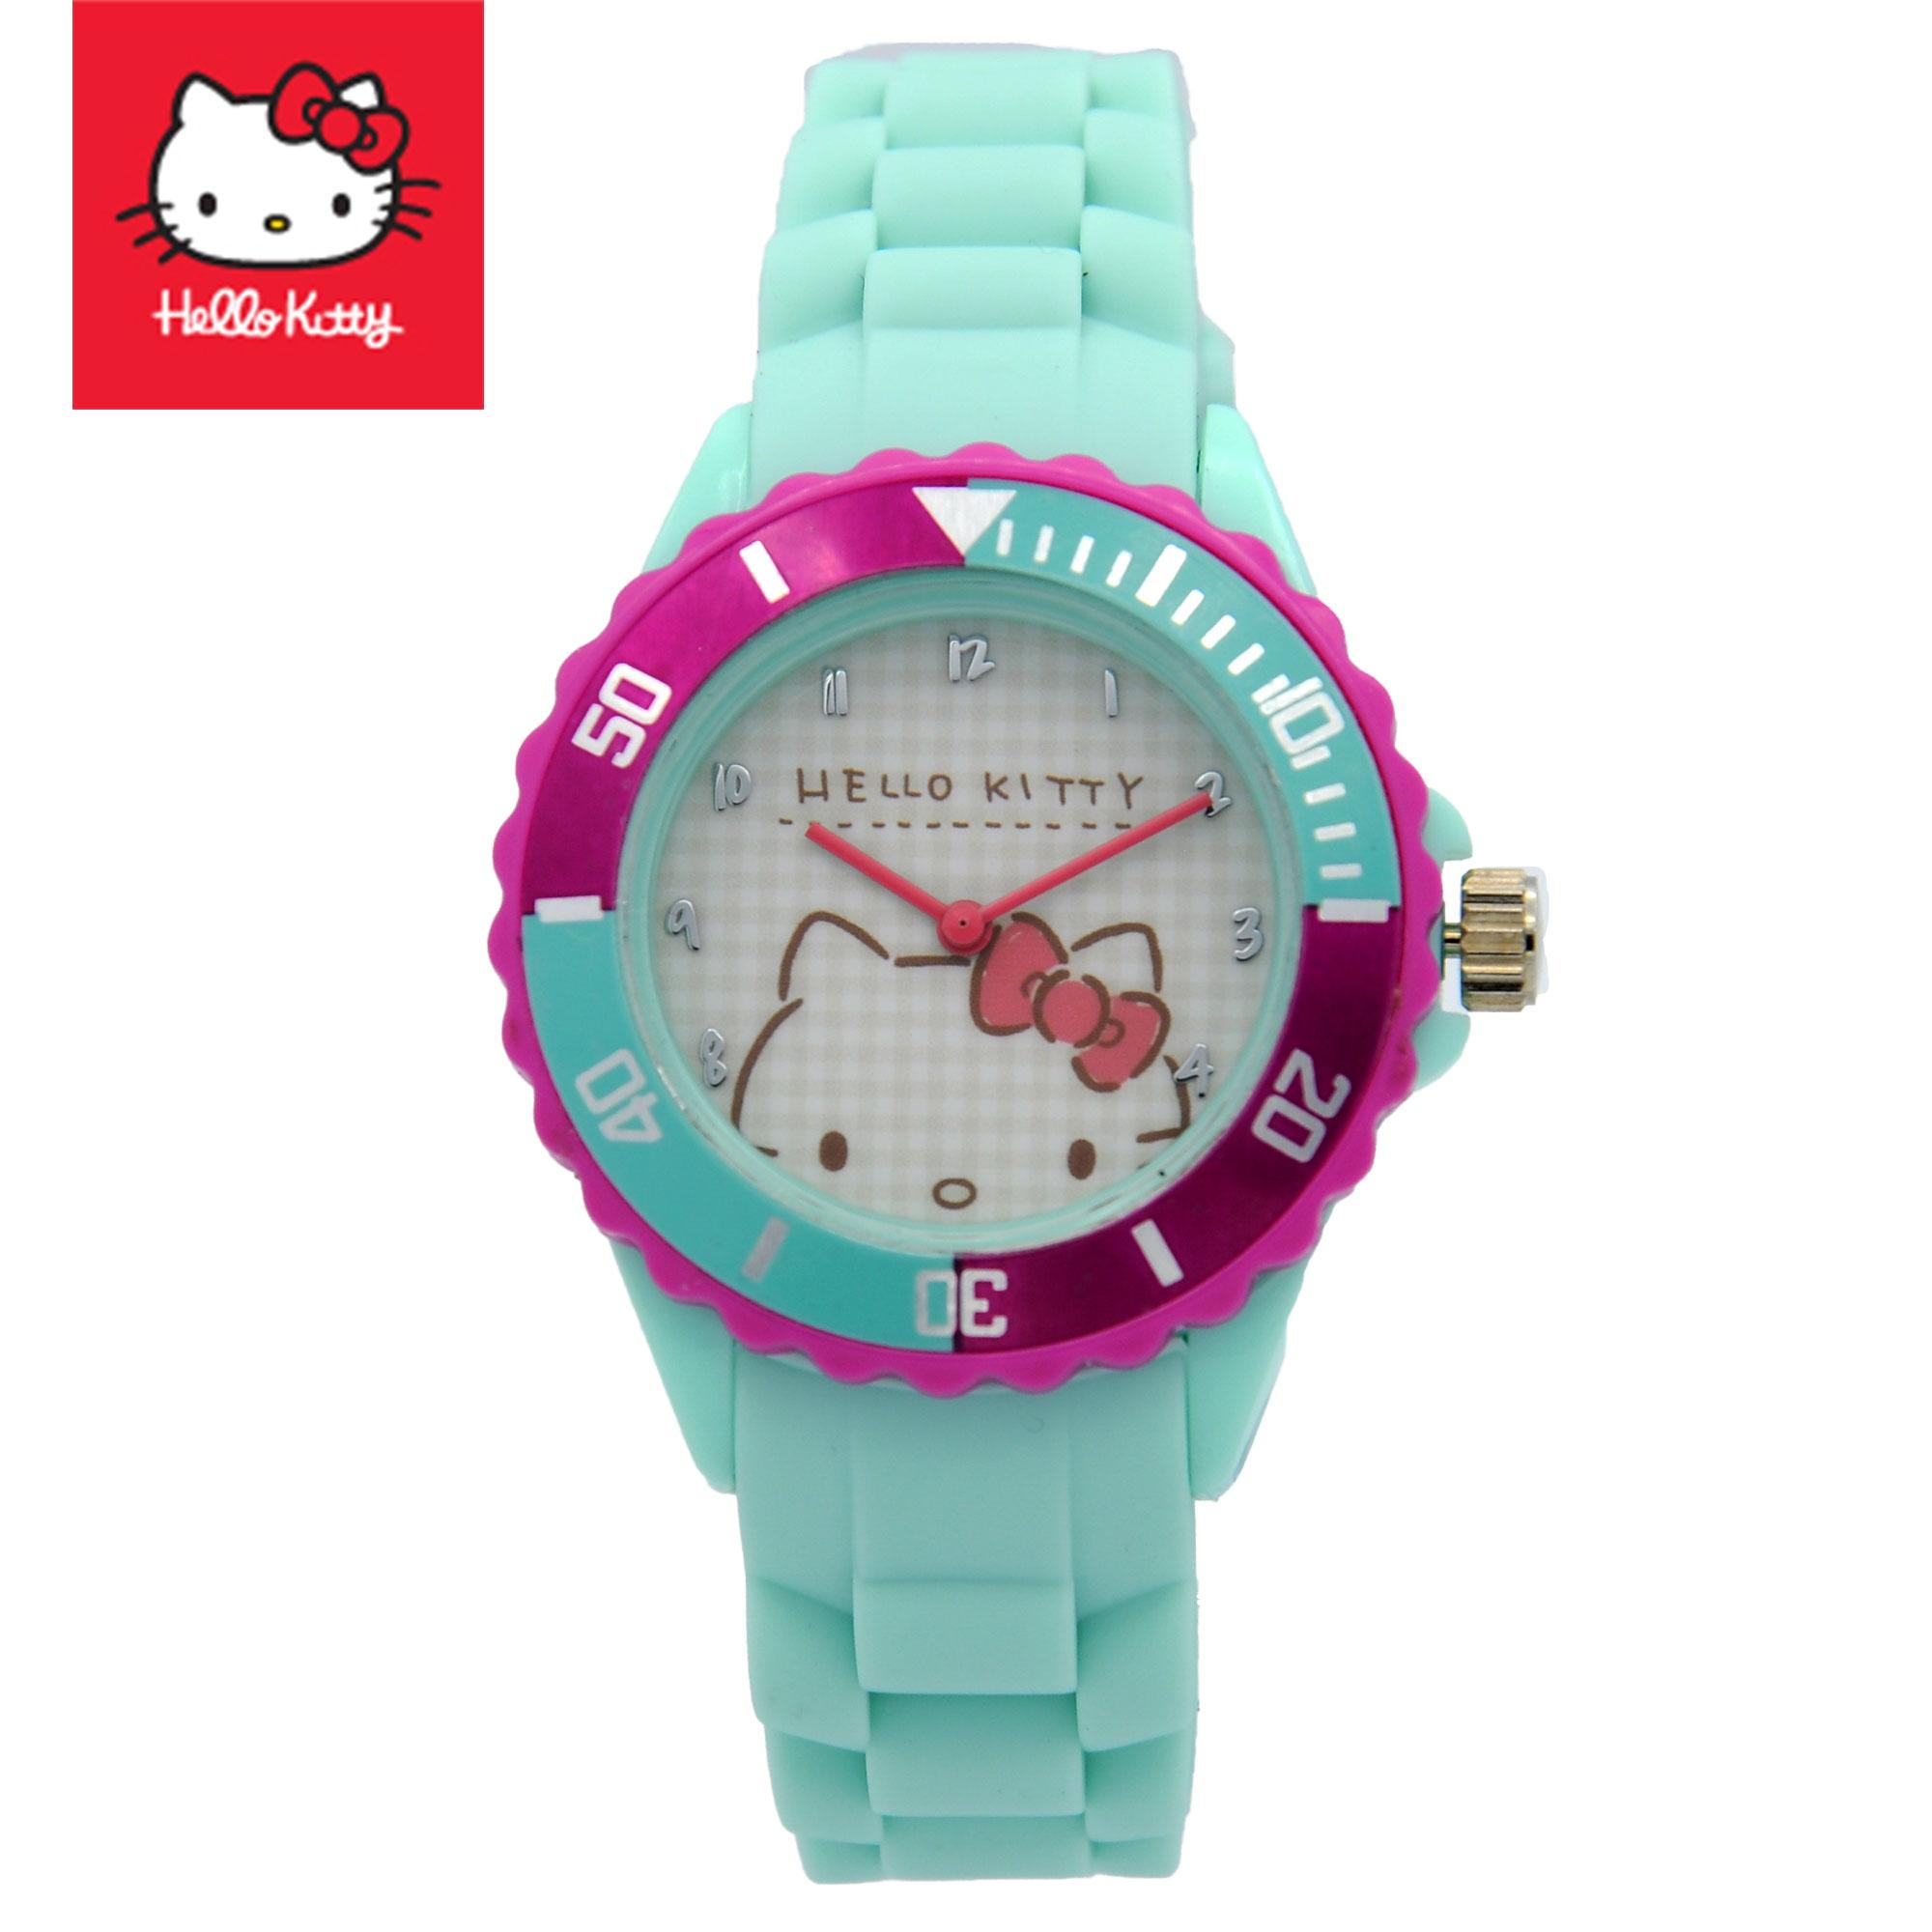 7224921529 Hello Kitty Girls Turquoise Rubber Strap Analog Casual Watch HKSS18004  (HKSS Series)